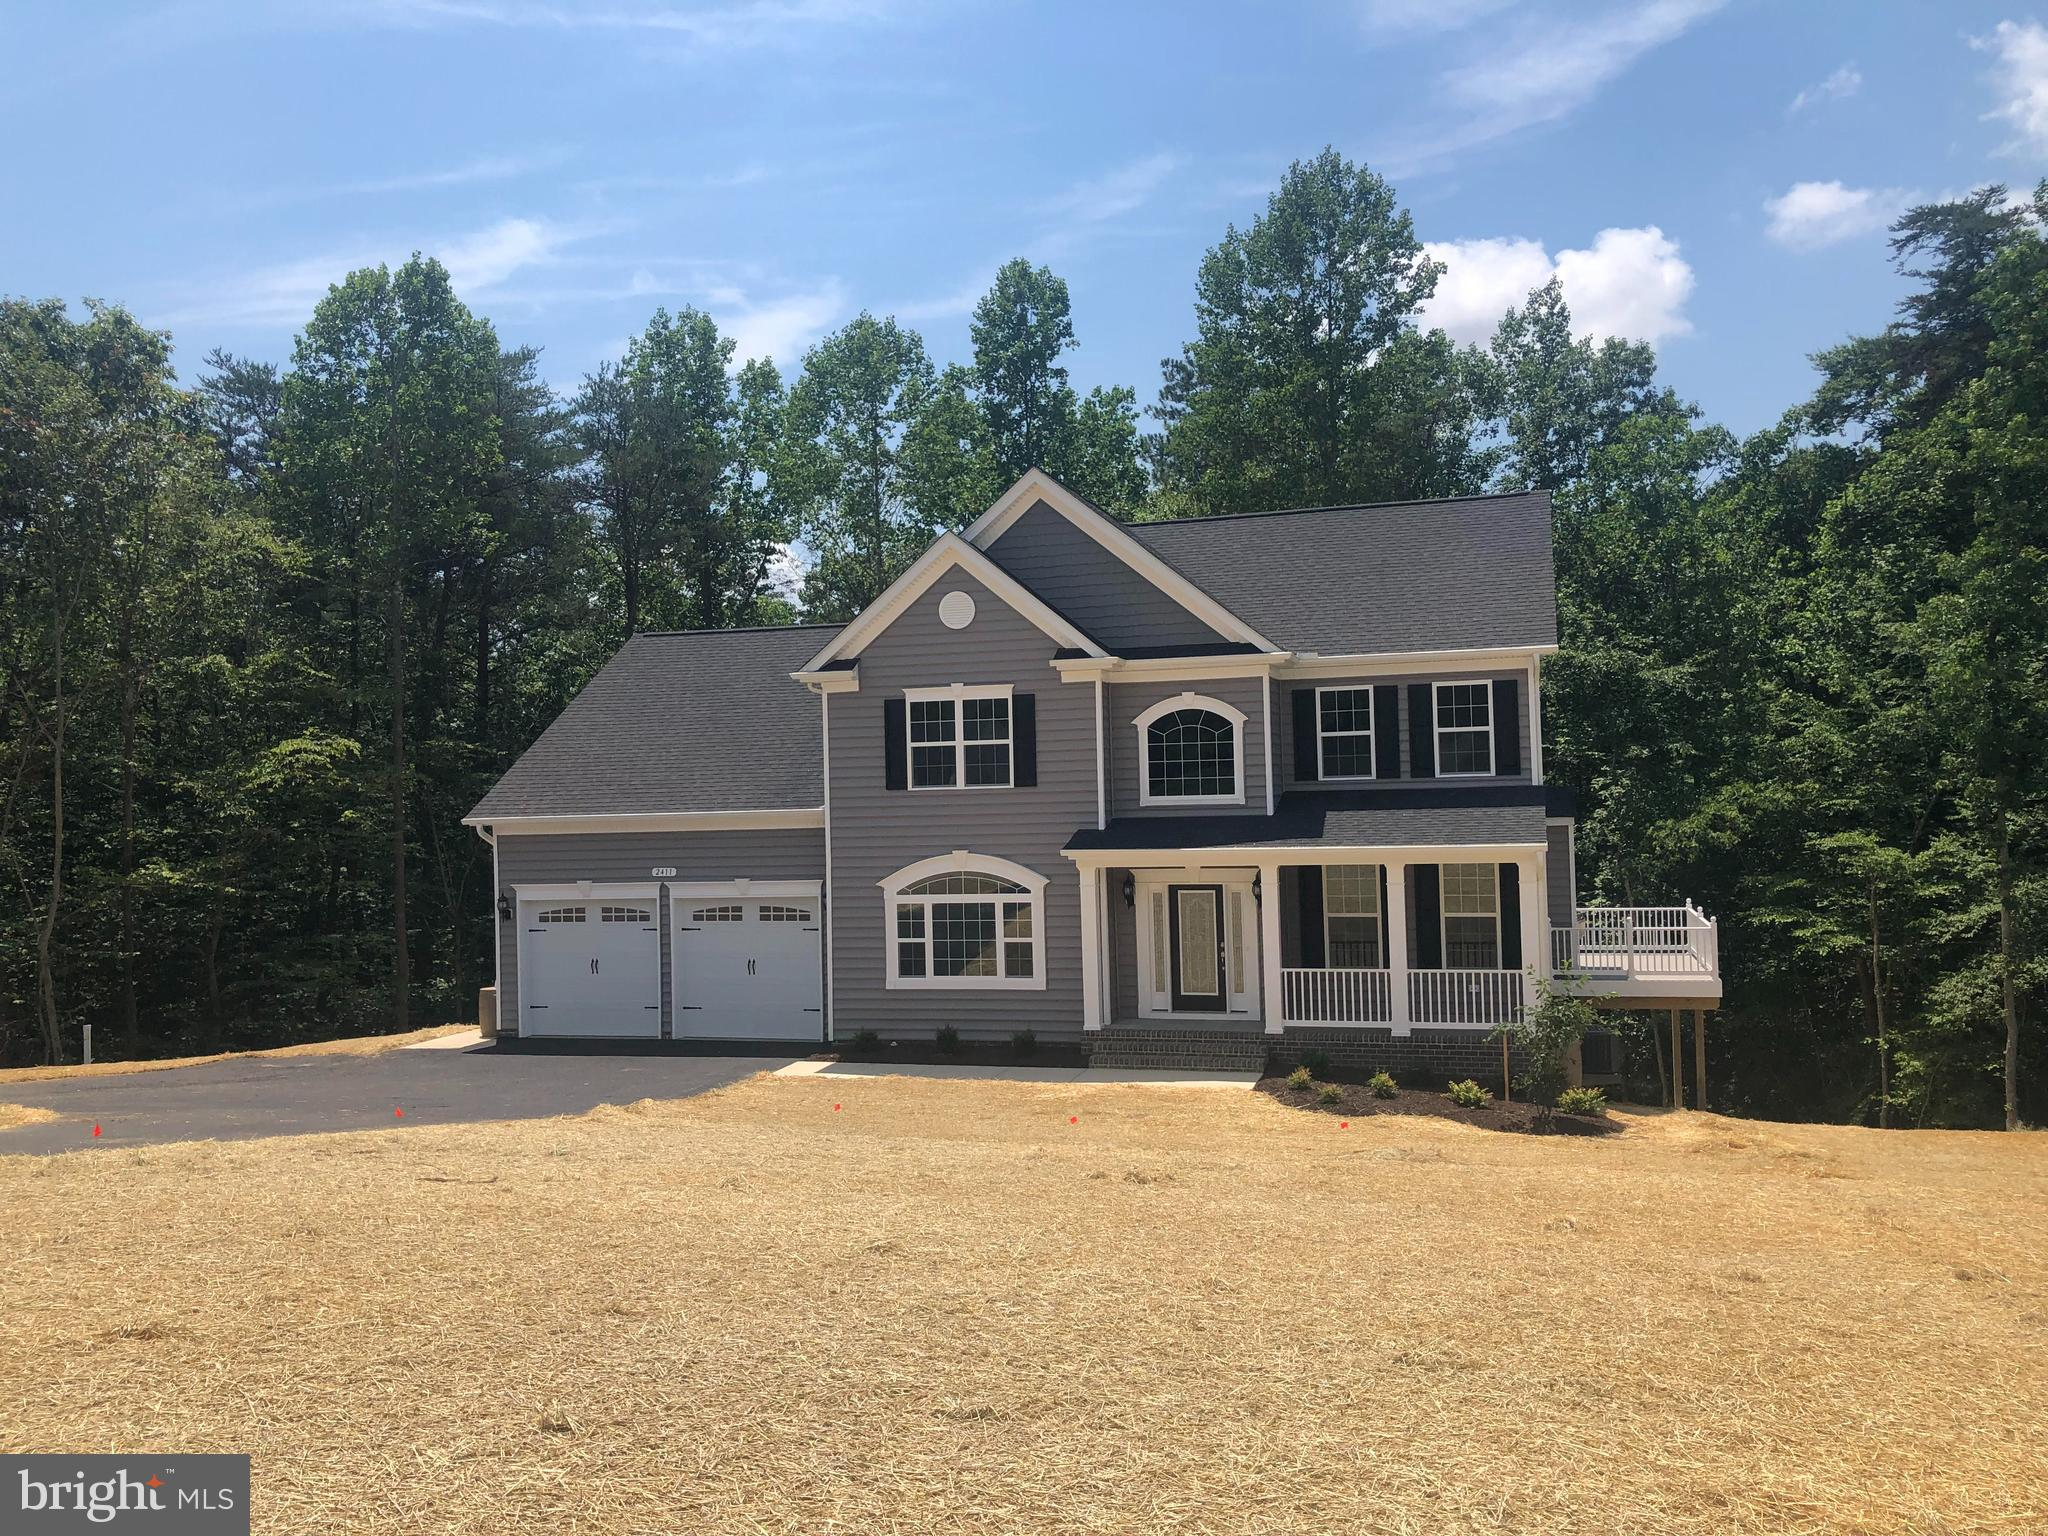 ***TO BE BUILT****New Homes in Prince Frederick! House & Lot packages starting in the $430's! Commun